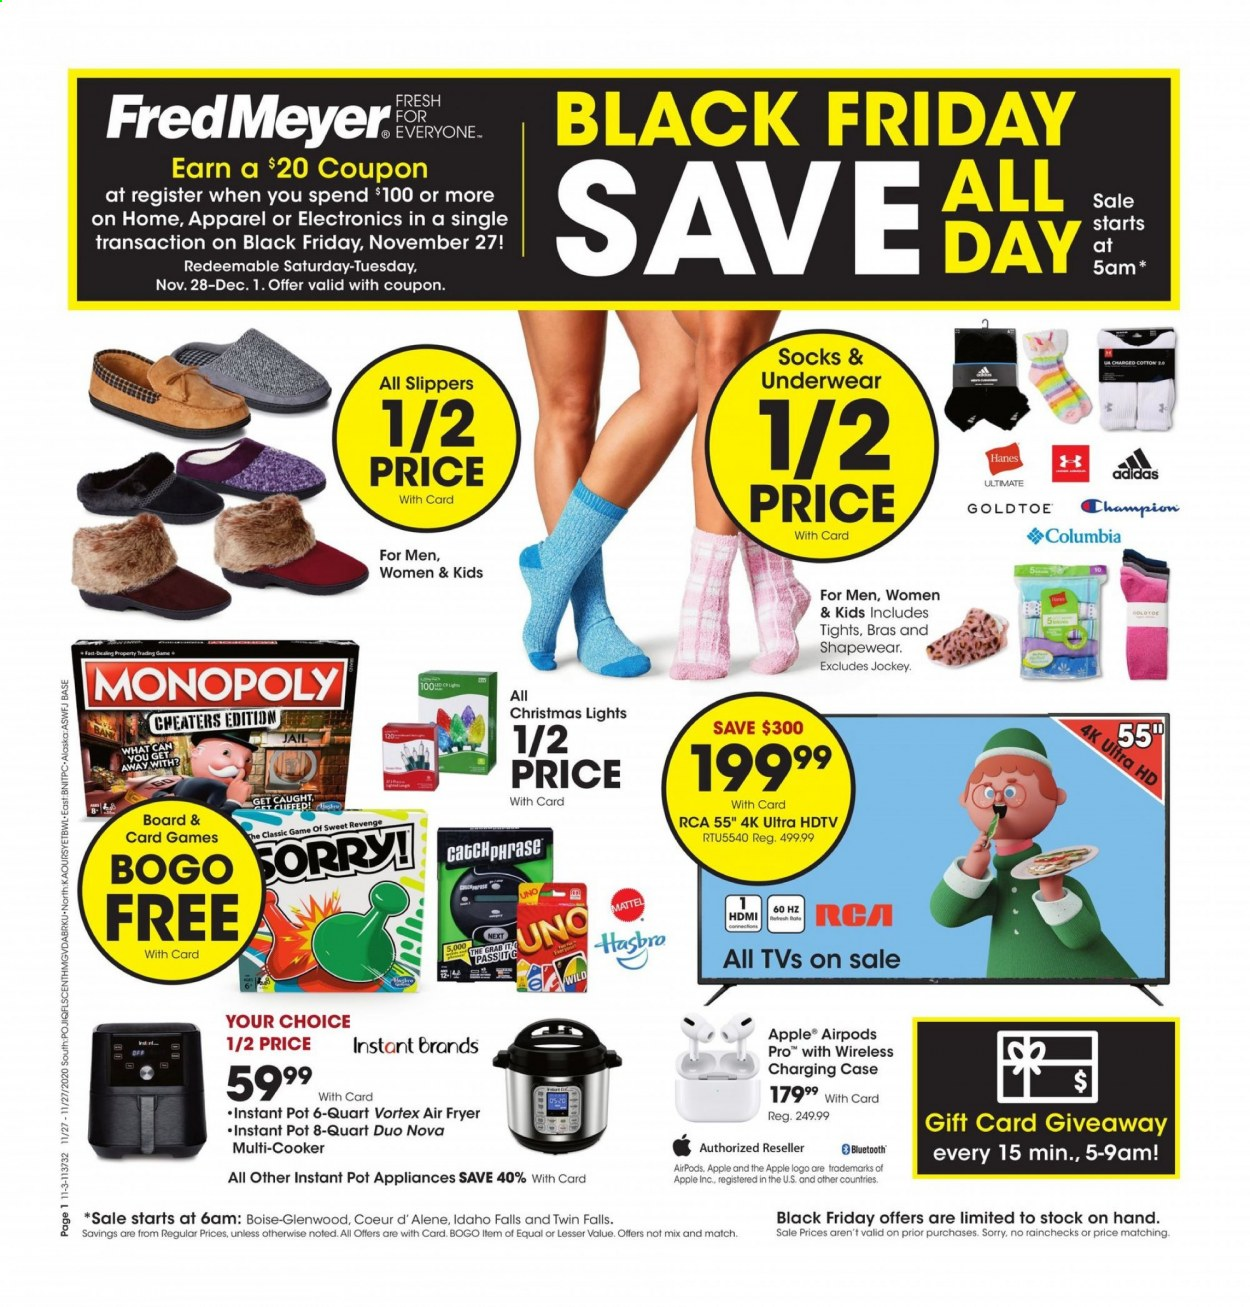 Fred Meyer Flyer - 11.27.2020 - 11.27.2020 - Sales products - Adidas, bra, columbia, fryer, Mattel, monopoly, rca, slippers, socks, tights, uhd tv, ultra hd, underwear, VORTEX, hdtv, Champion, pot, hasbro, christmas lights, air fryer, Instant Pot, Game, apple airpods. Page 1.